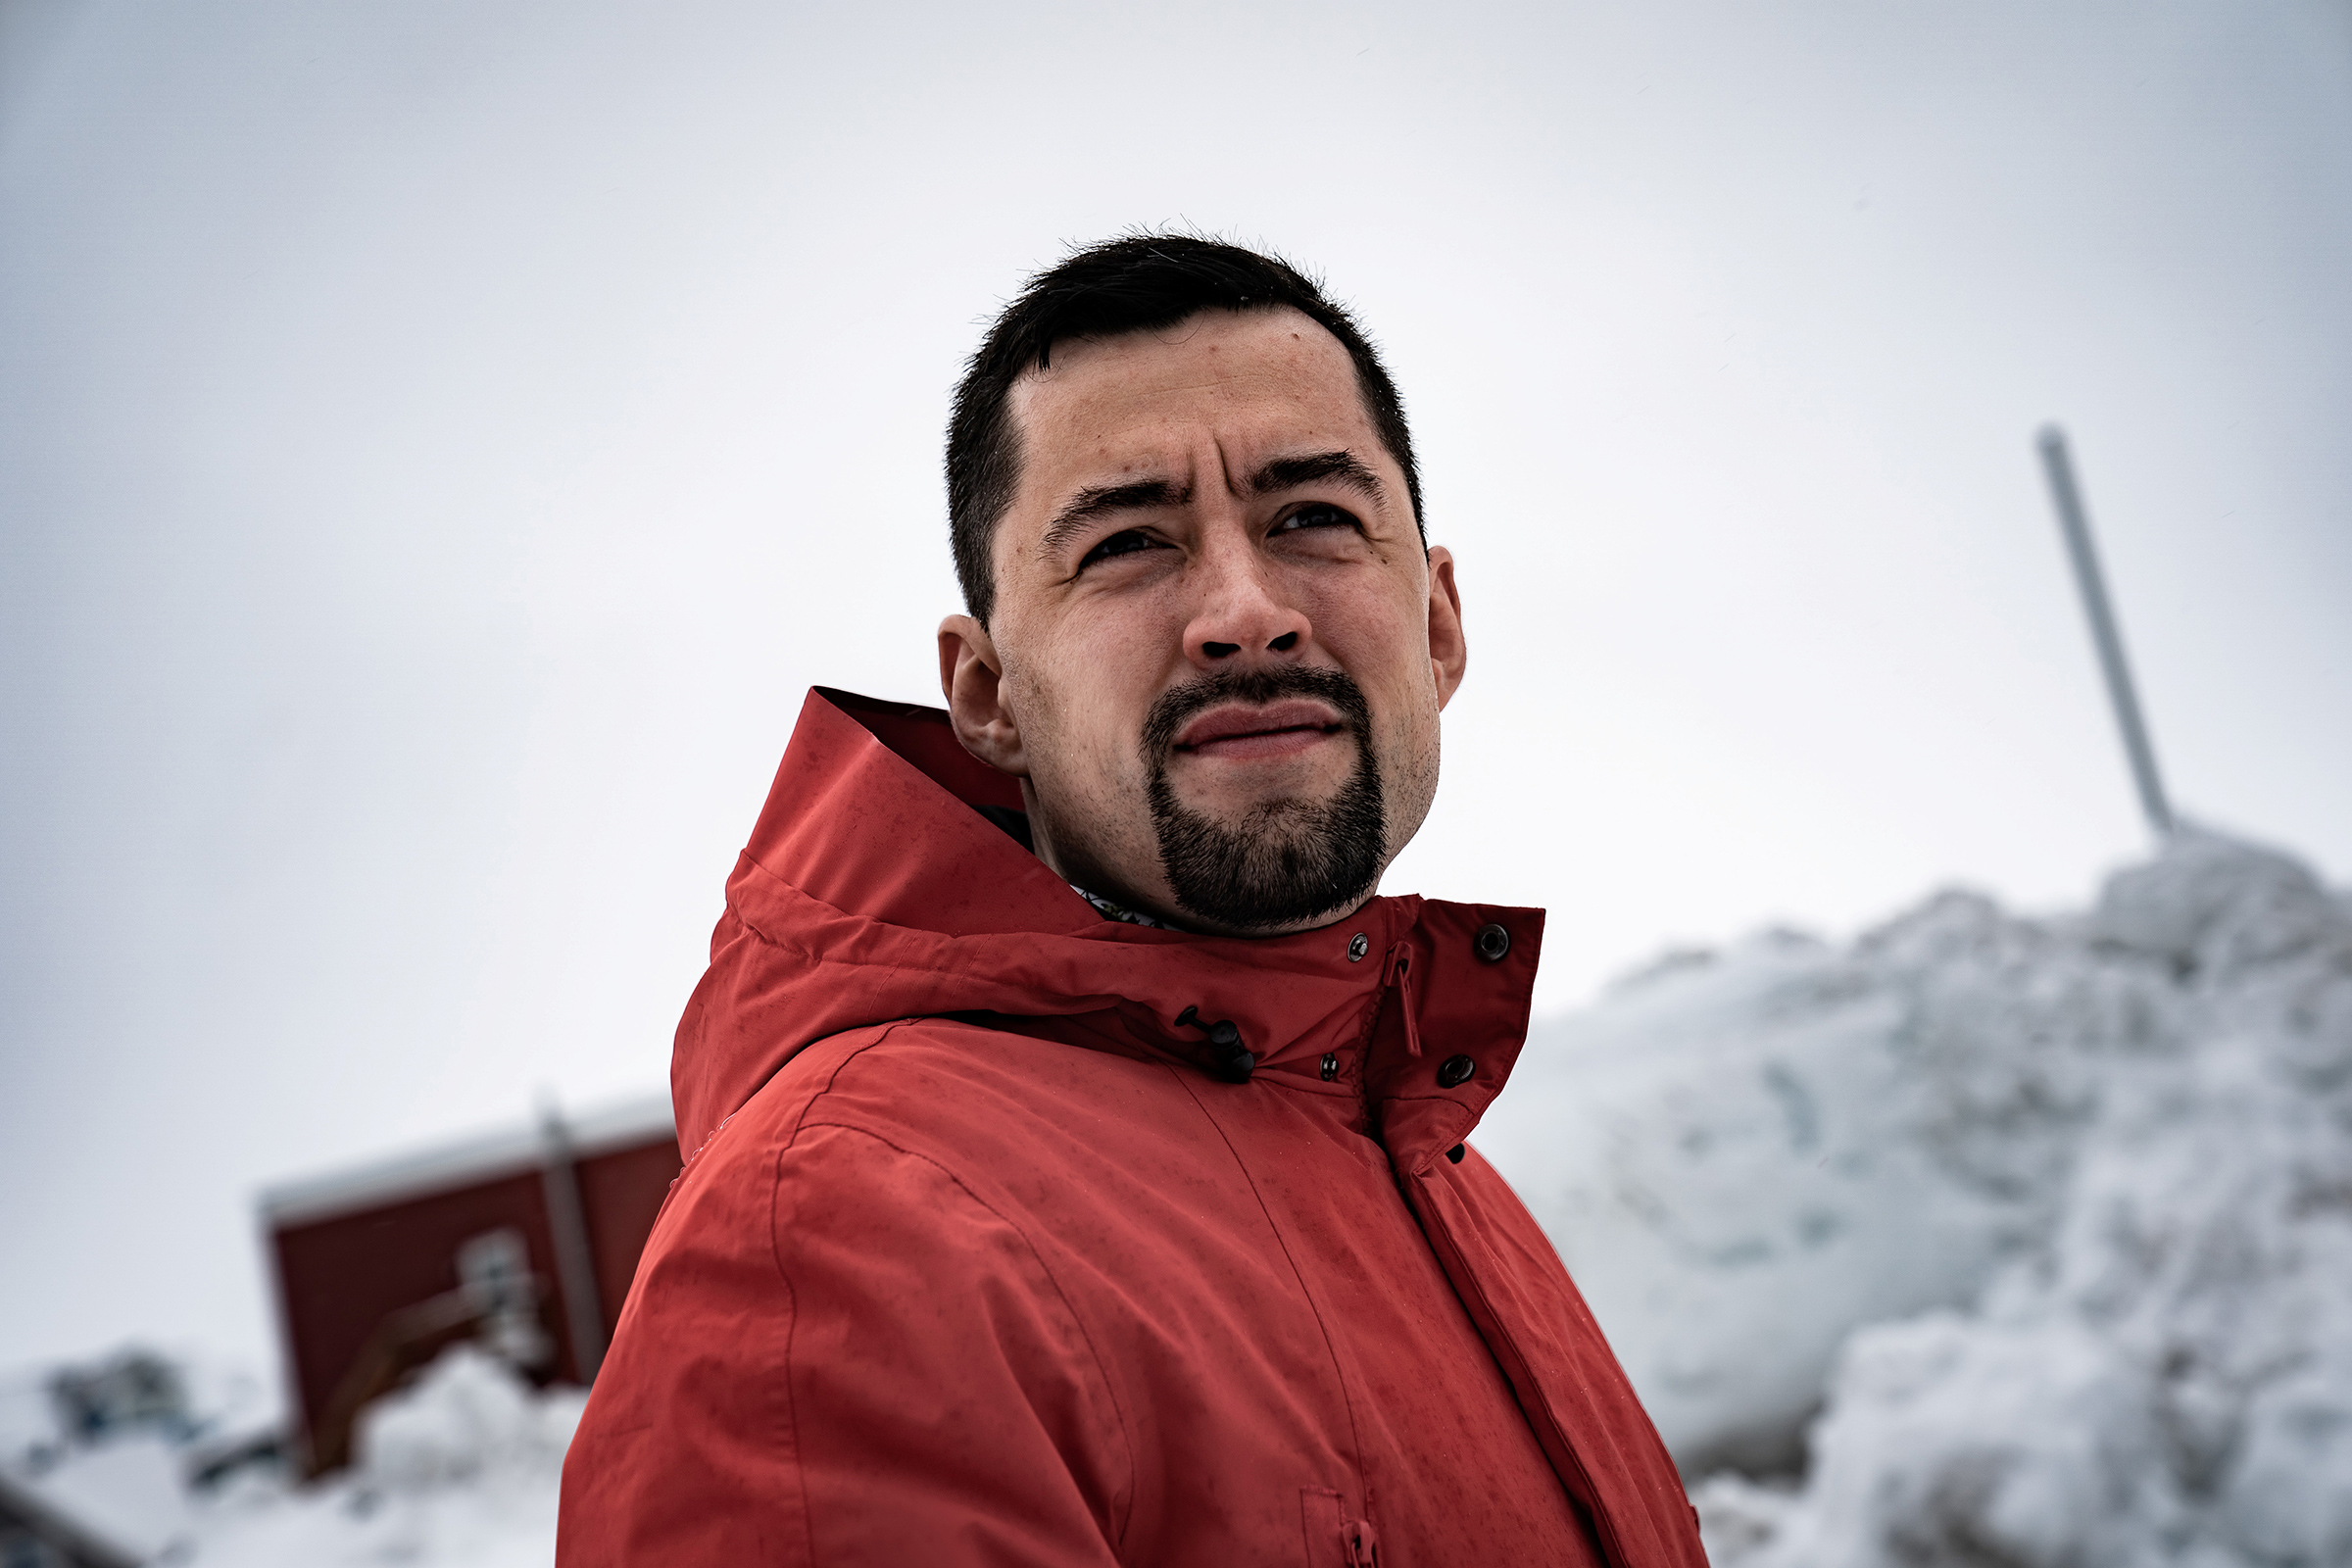 Mute Egede, pictured ahead of the parliamentary elections in April, in which his Inuit Ataqatigiit party secured a win and lifted him to Prime Minister.